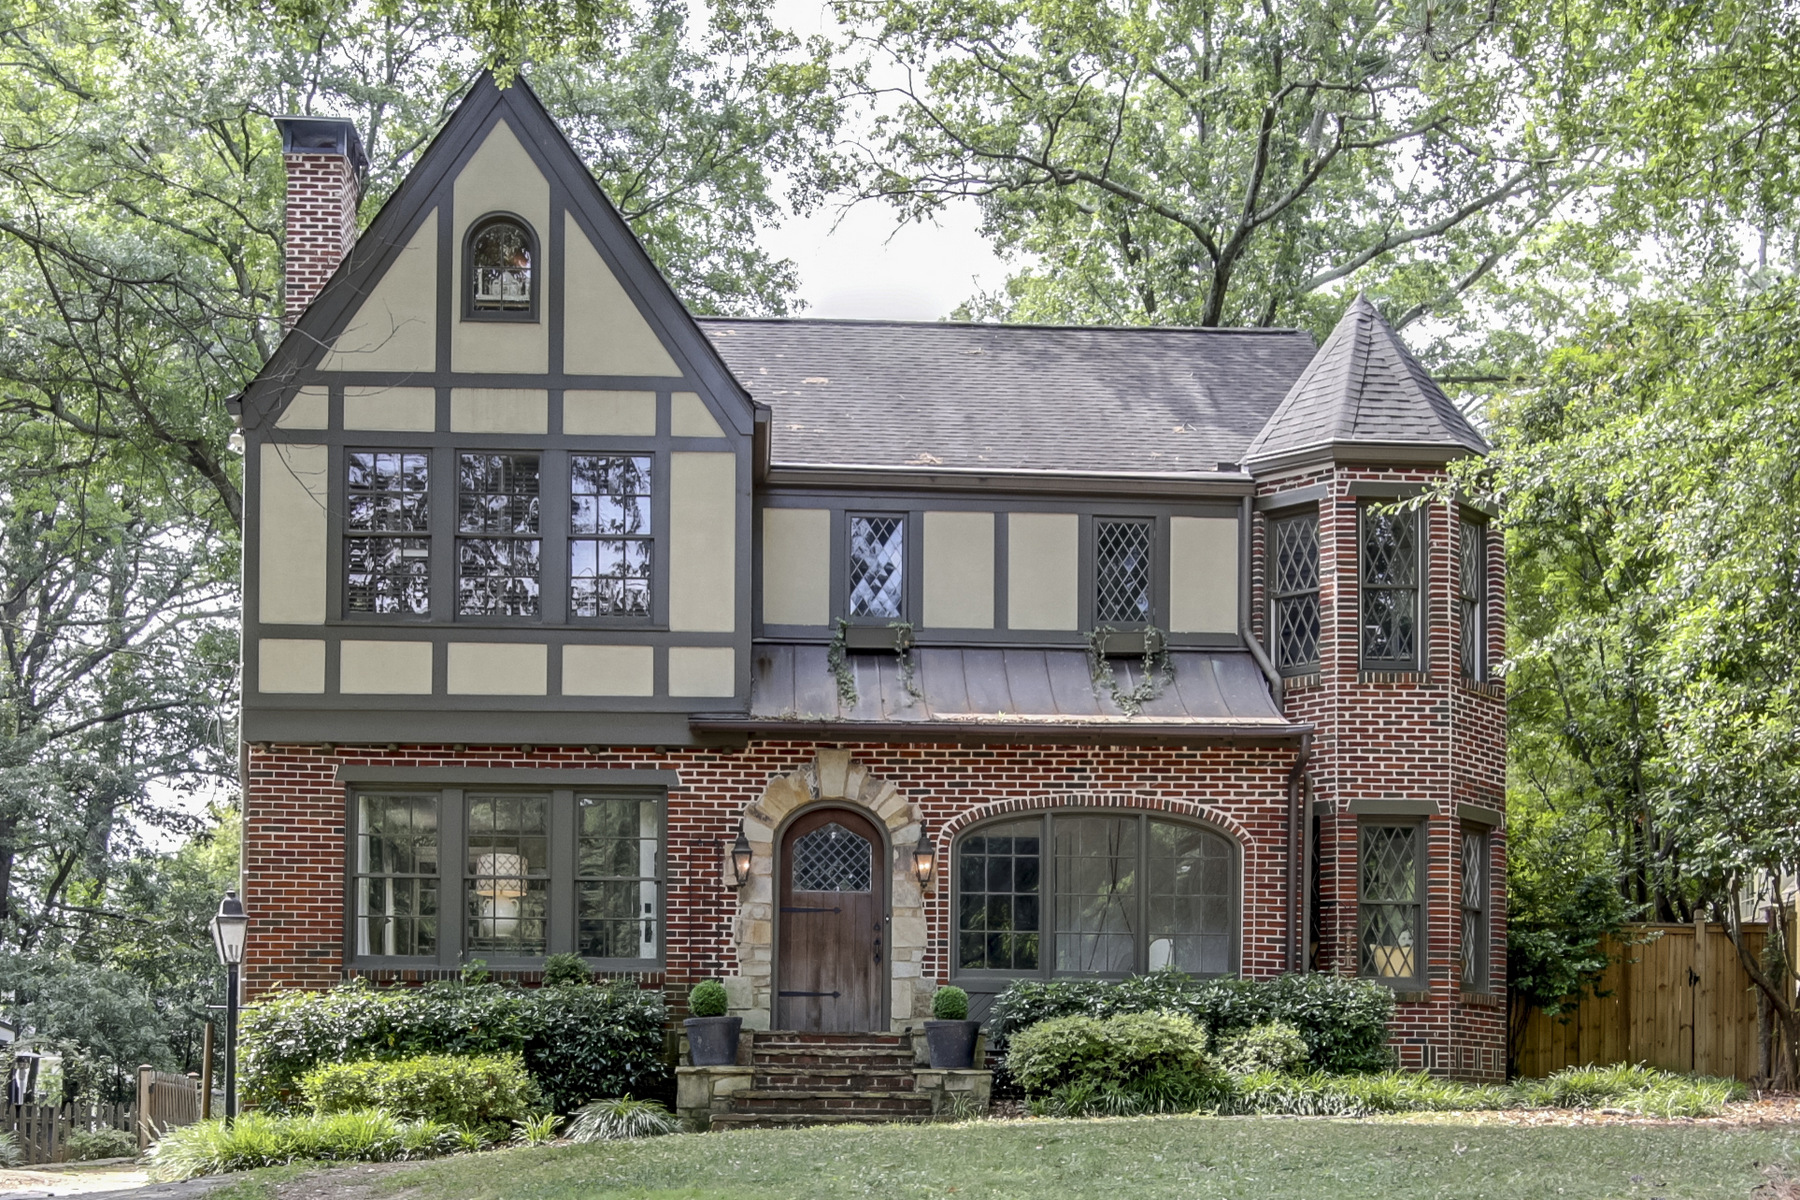 Single Family Home for Sale at Perfectly Charming In Peachtree Park 611 E Paces Ferry Road NE Peachtree Park, Atlanta, Georgia, 30305 United States